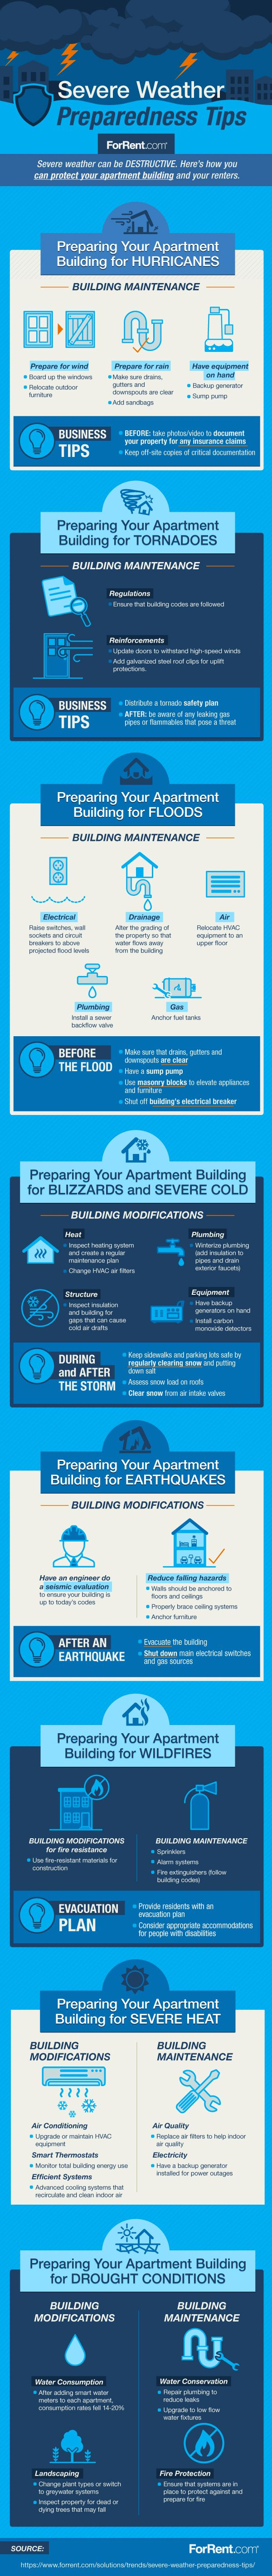 Severe weather can be destructive. Whether your region is exposed to tornadoes, hurricanes, wildfires, blizzards or other severe weather events, it's important for apartment managers to properly prepare. And very often, those preparations begin far before the storm hits. Want to protect your property and keep your residents safe? The following infographic by ForRent.com will help you be ready for the worst with this disaster readiness guide for apartment managers.